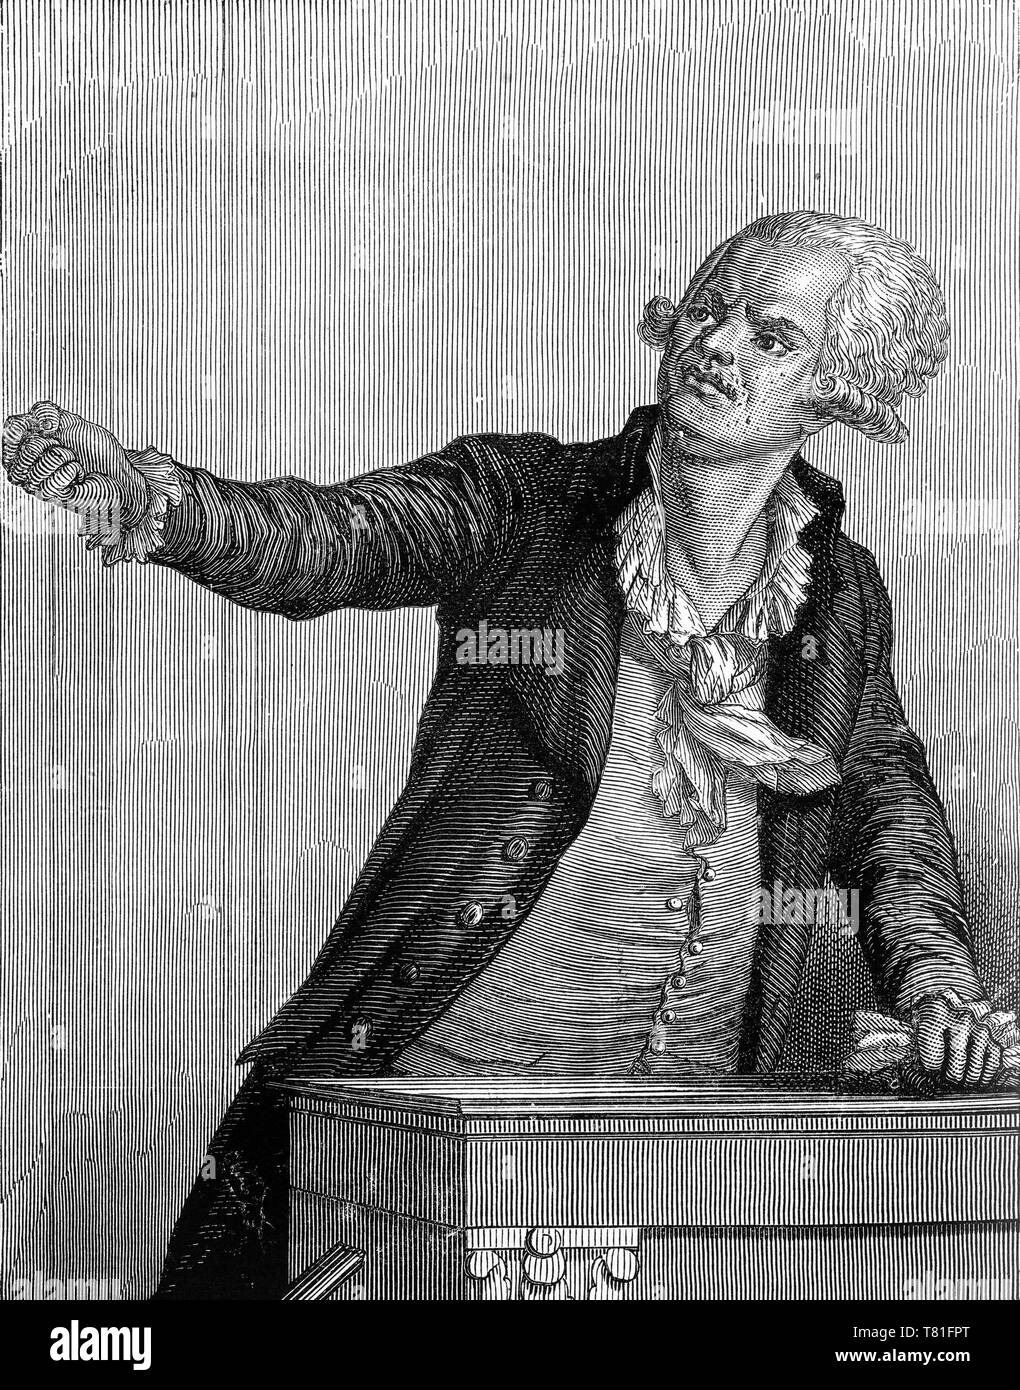 Engraving of Georges Jacques Danton (1759 – 1794) leading figure in the early stages of the French Revolution, amd the first president of the Committee of Public Safety. He was guillotined after accusations of leniency toward the enemies of the Revolution. - Stock Image